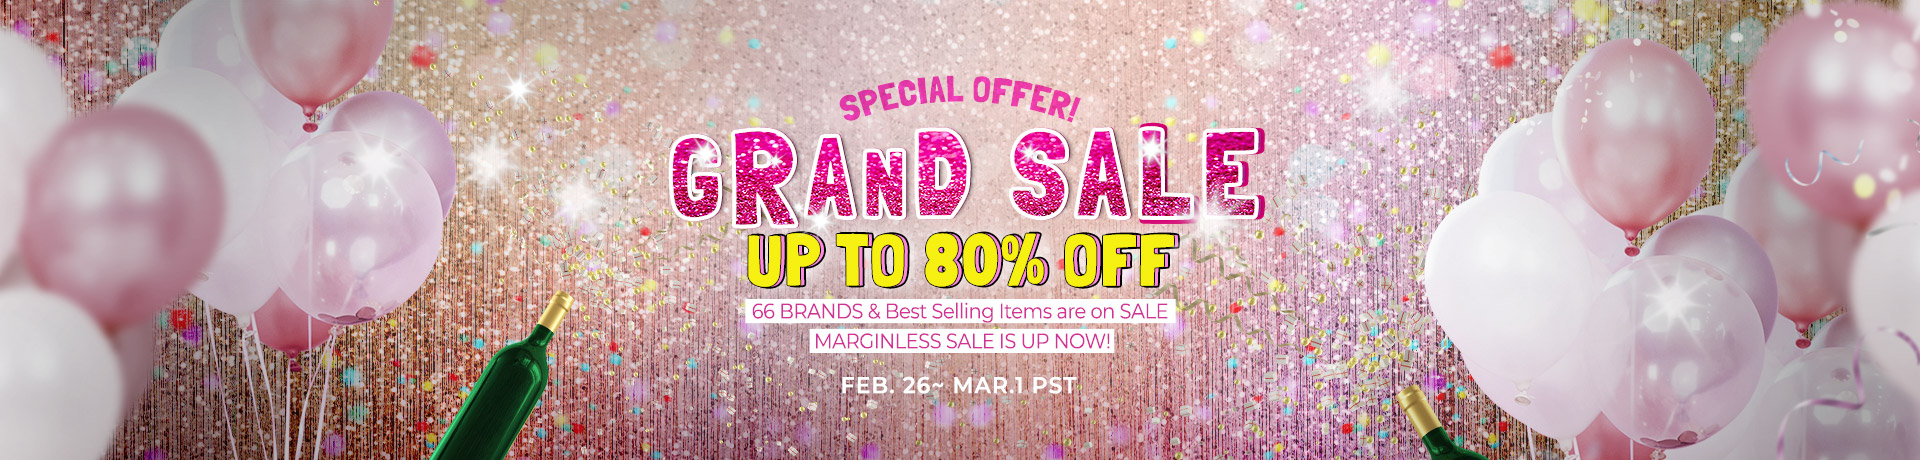 SPECIAL OFFER! GRAND SALE UP TO 80% OFF